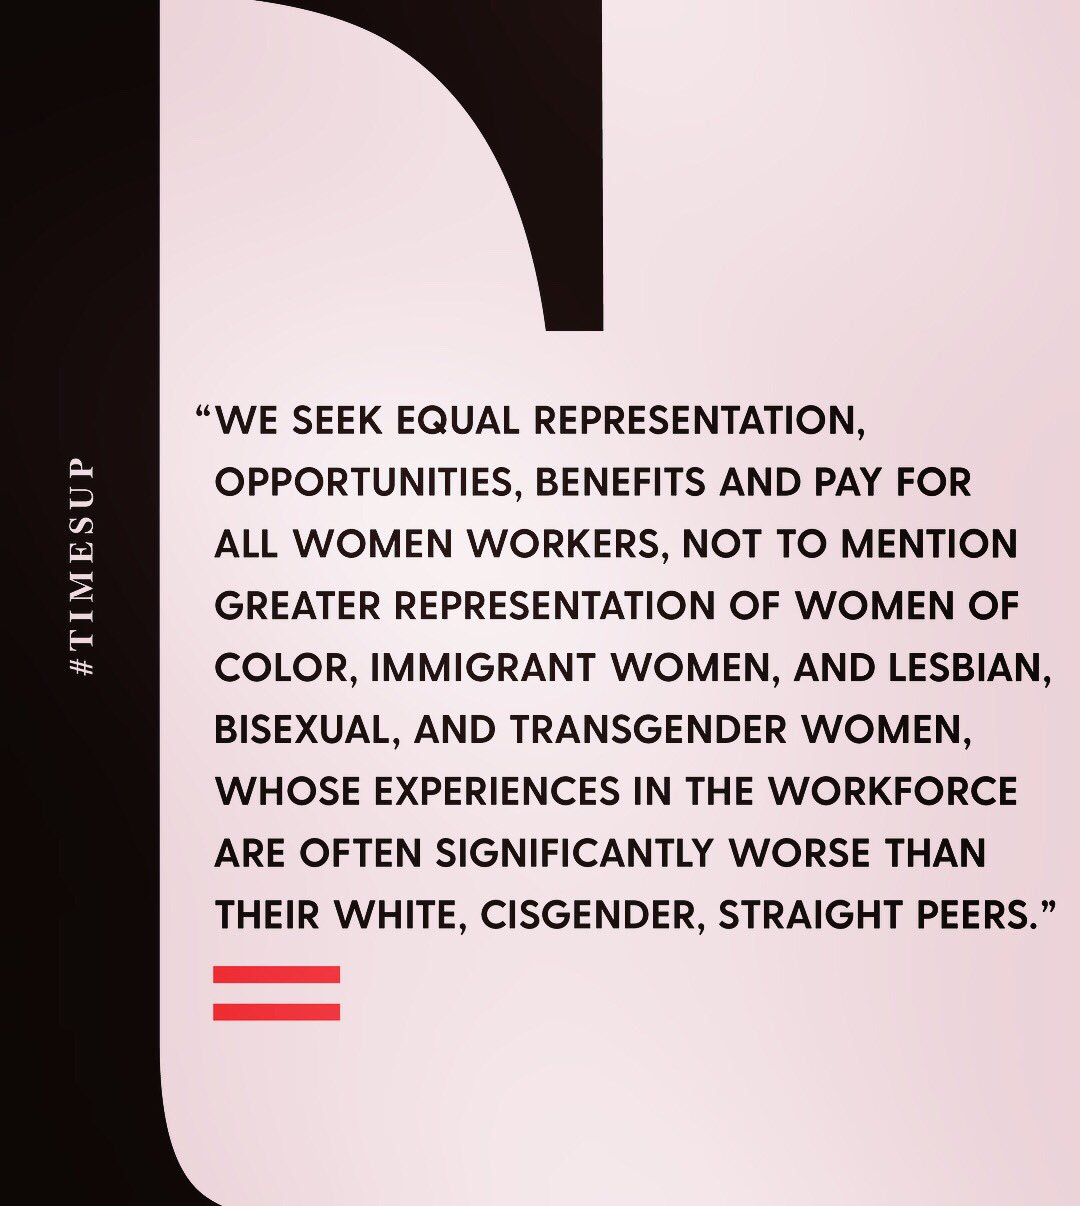 #TimesUp Sign the solidarity letter & donate to the @TIMESUPNW Legal Defense Fund: https://t.co/frim96EFv0 https://t.co/ph6CLiMIxB